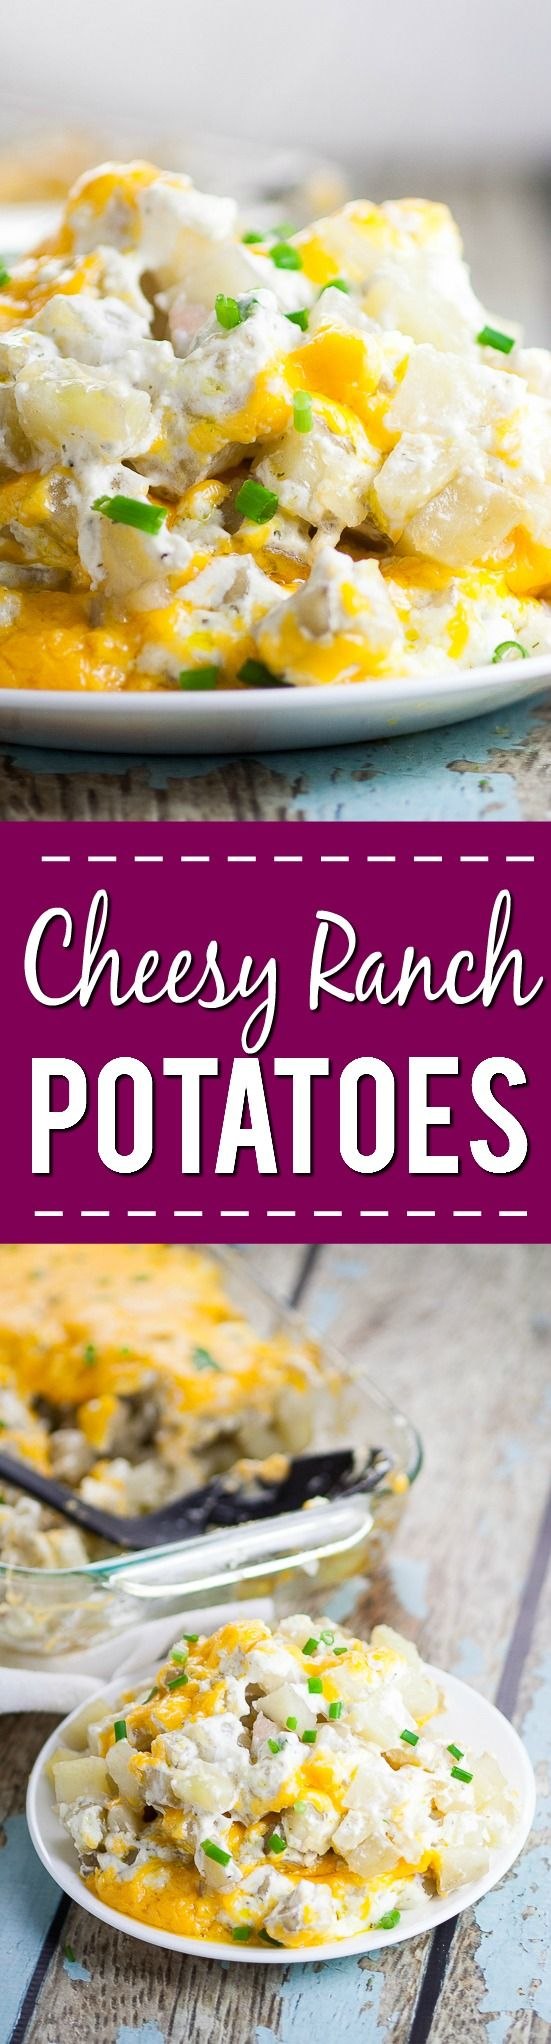 Cheesy Ranch Potatoes Recipe - Creamy, Cheesy Ranch Potatoes are the ultimate comfort food recipe that everyone will love.  Perfect for potlucks, holidays, and a crowd favorite dish to pass. Soft, warm potatoes covered in creamy ranch and cream cheese and topped with gooey melted cheddar.  Easy potato side dish recipe.